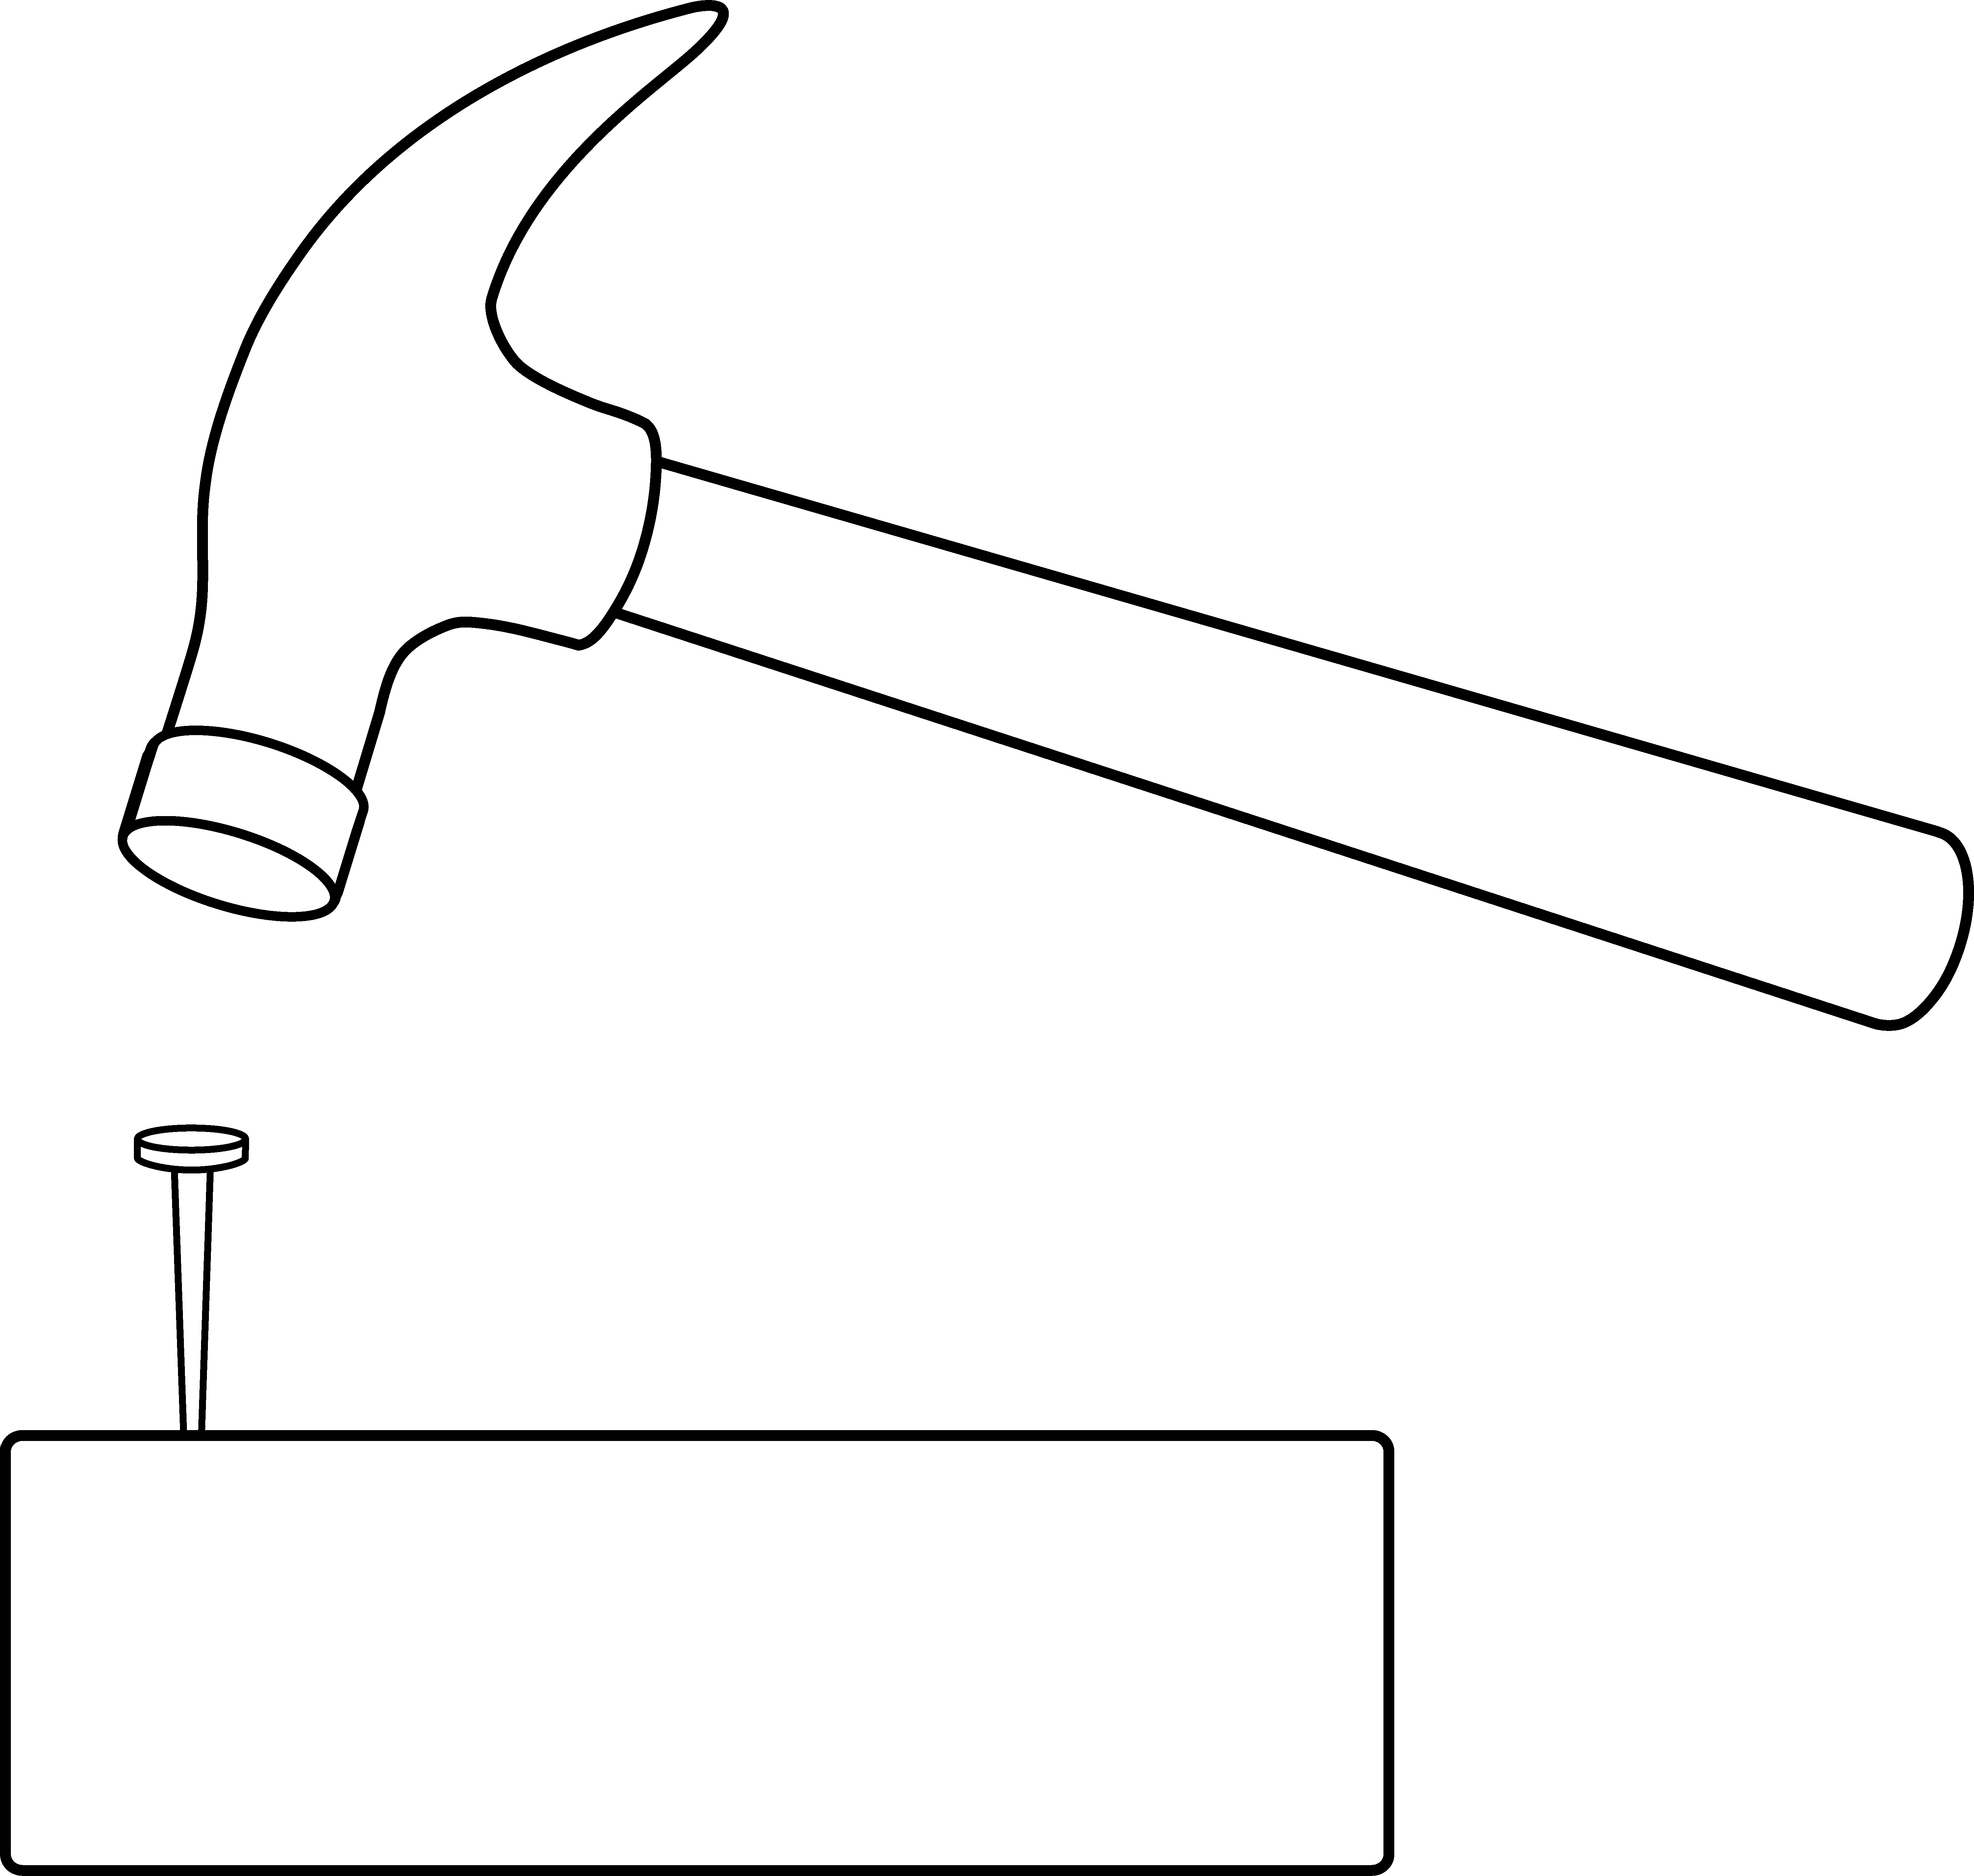 Nails clipart wood clipart. Hammer and nail outline